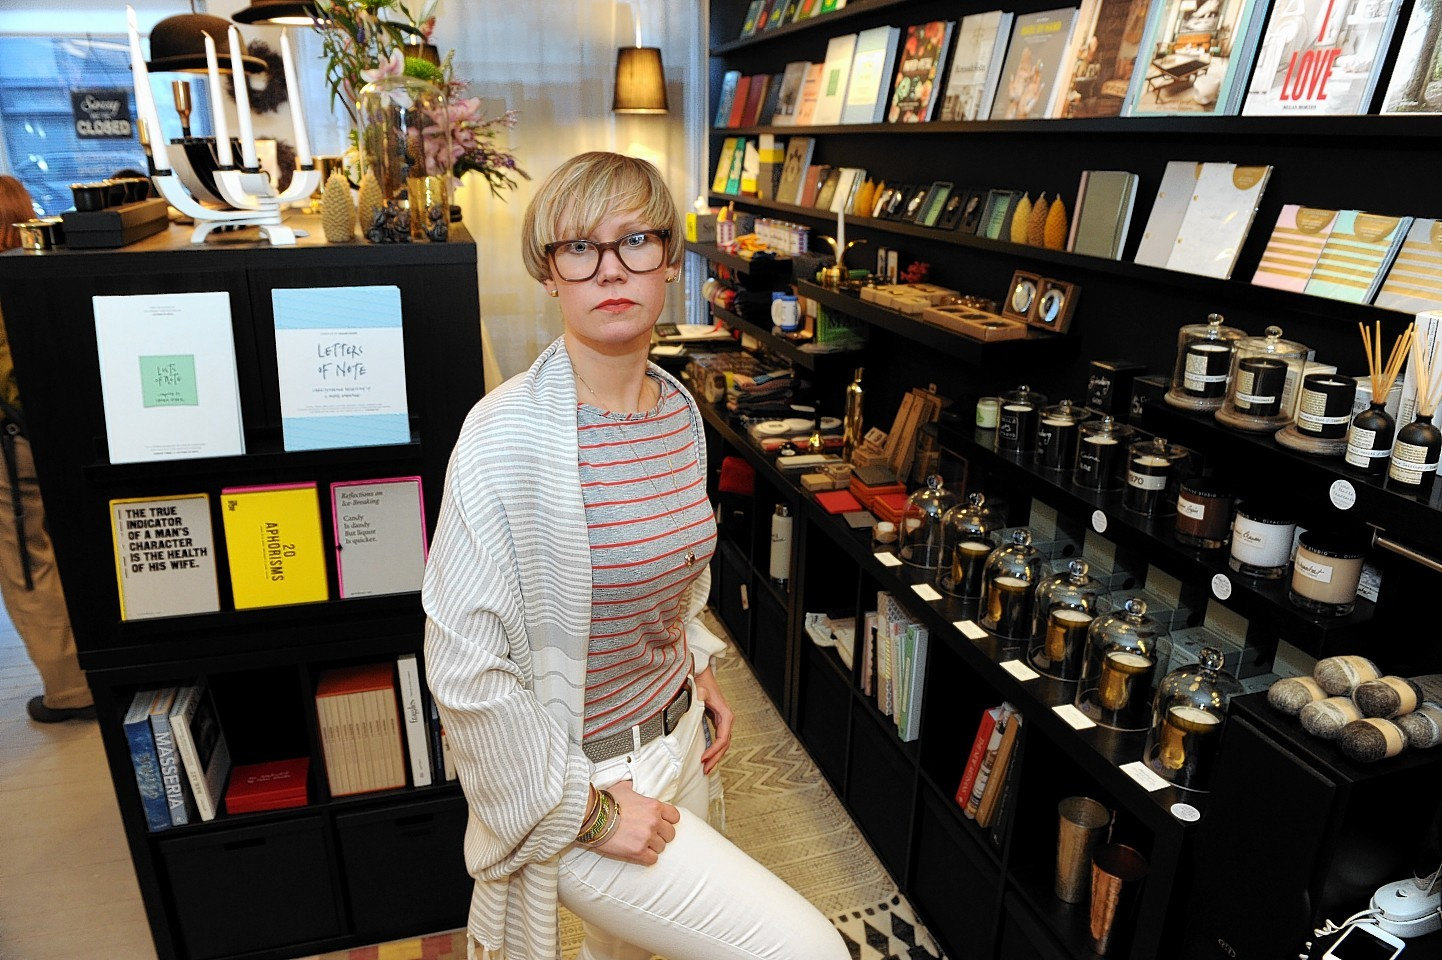 Tytti Peltoniemi, who owns Peltoniemi Concept Store, on Chattan Place, wrote an open letter to the criminal who lifted the Triwa Lansen Chrono watch from one of her shelves.